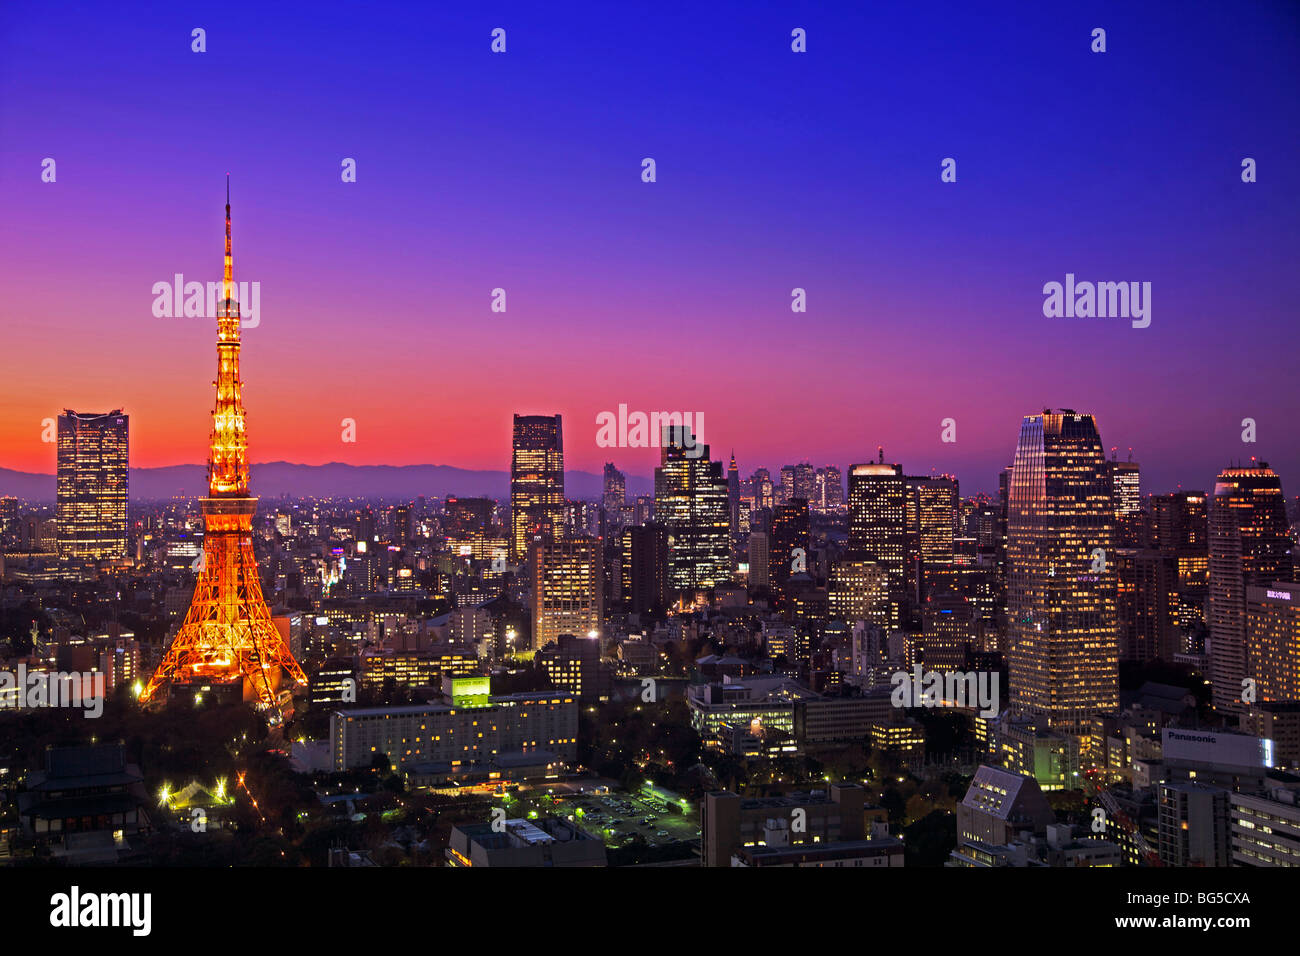 Sunset view of Tokyo Tower and central Tokyo skyline, Japan - Stock Image